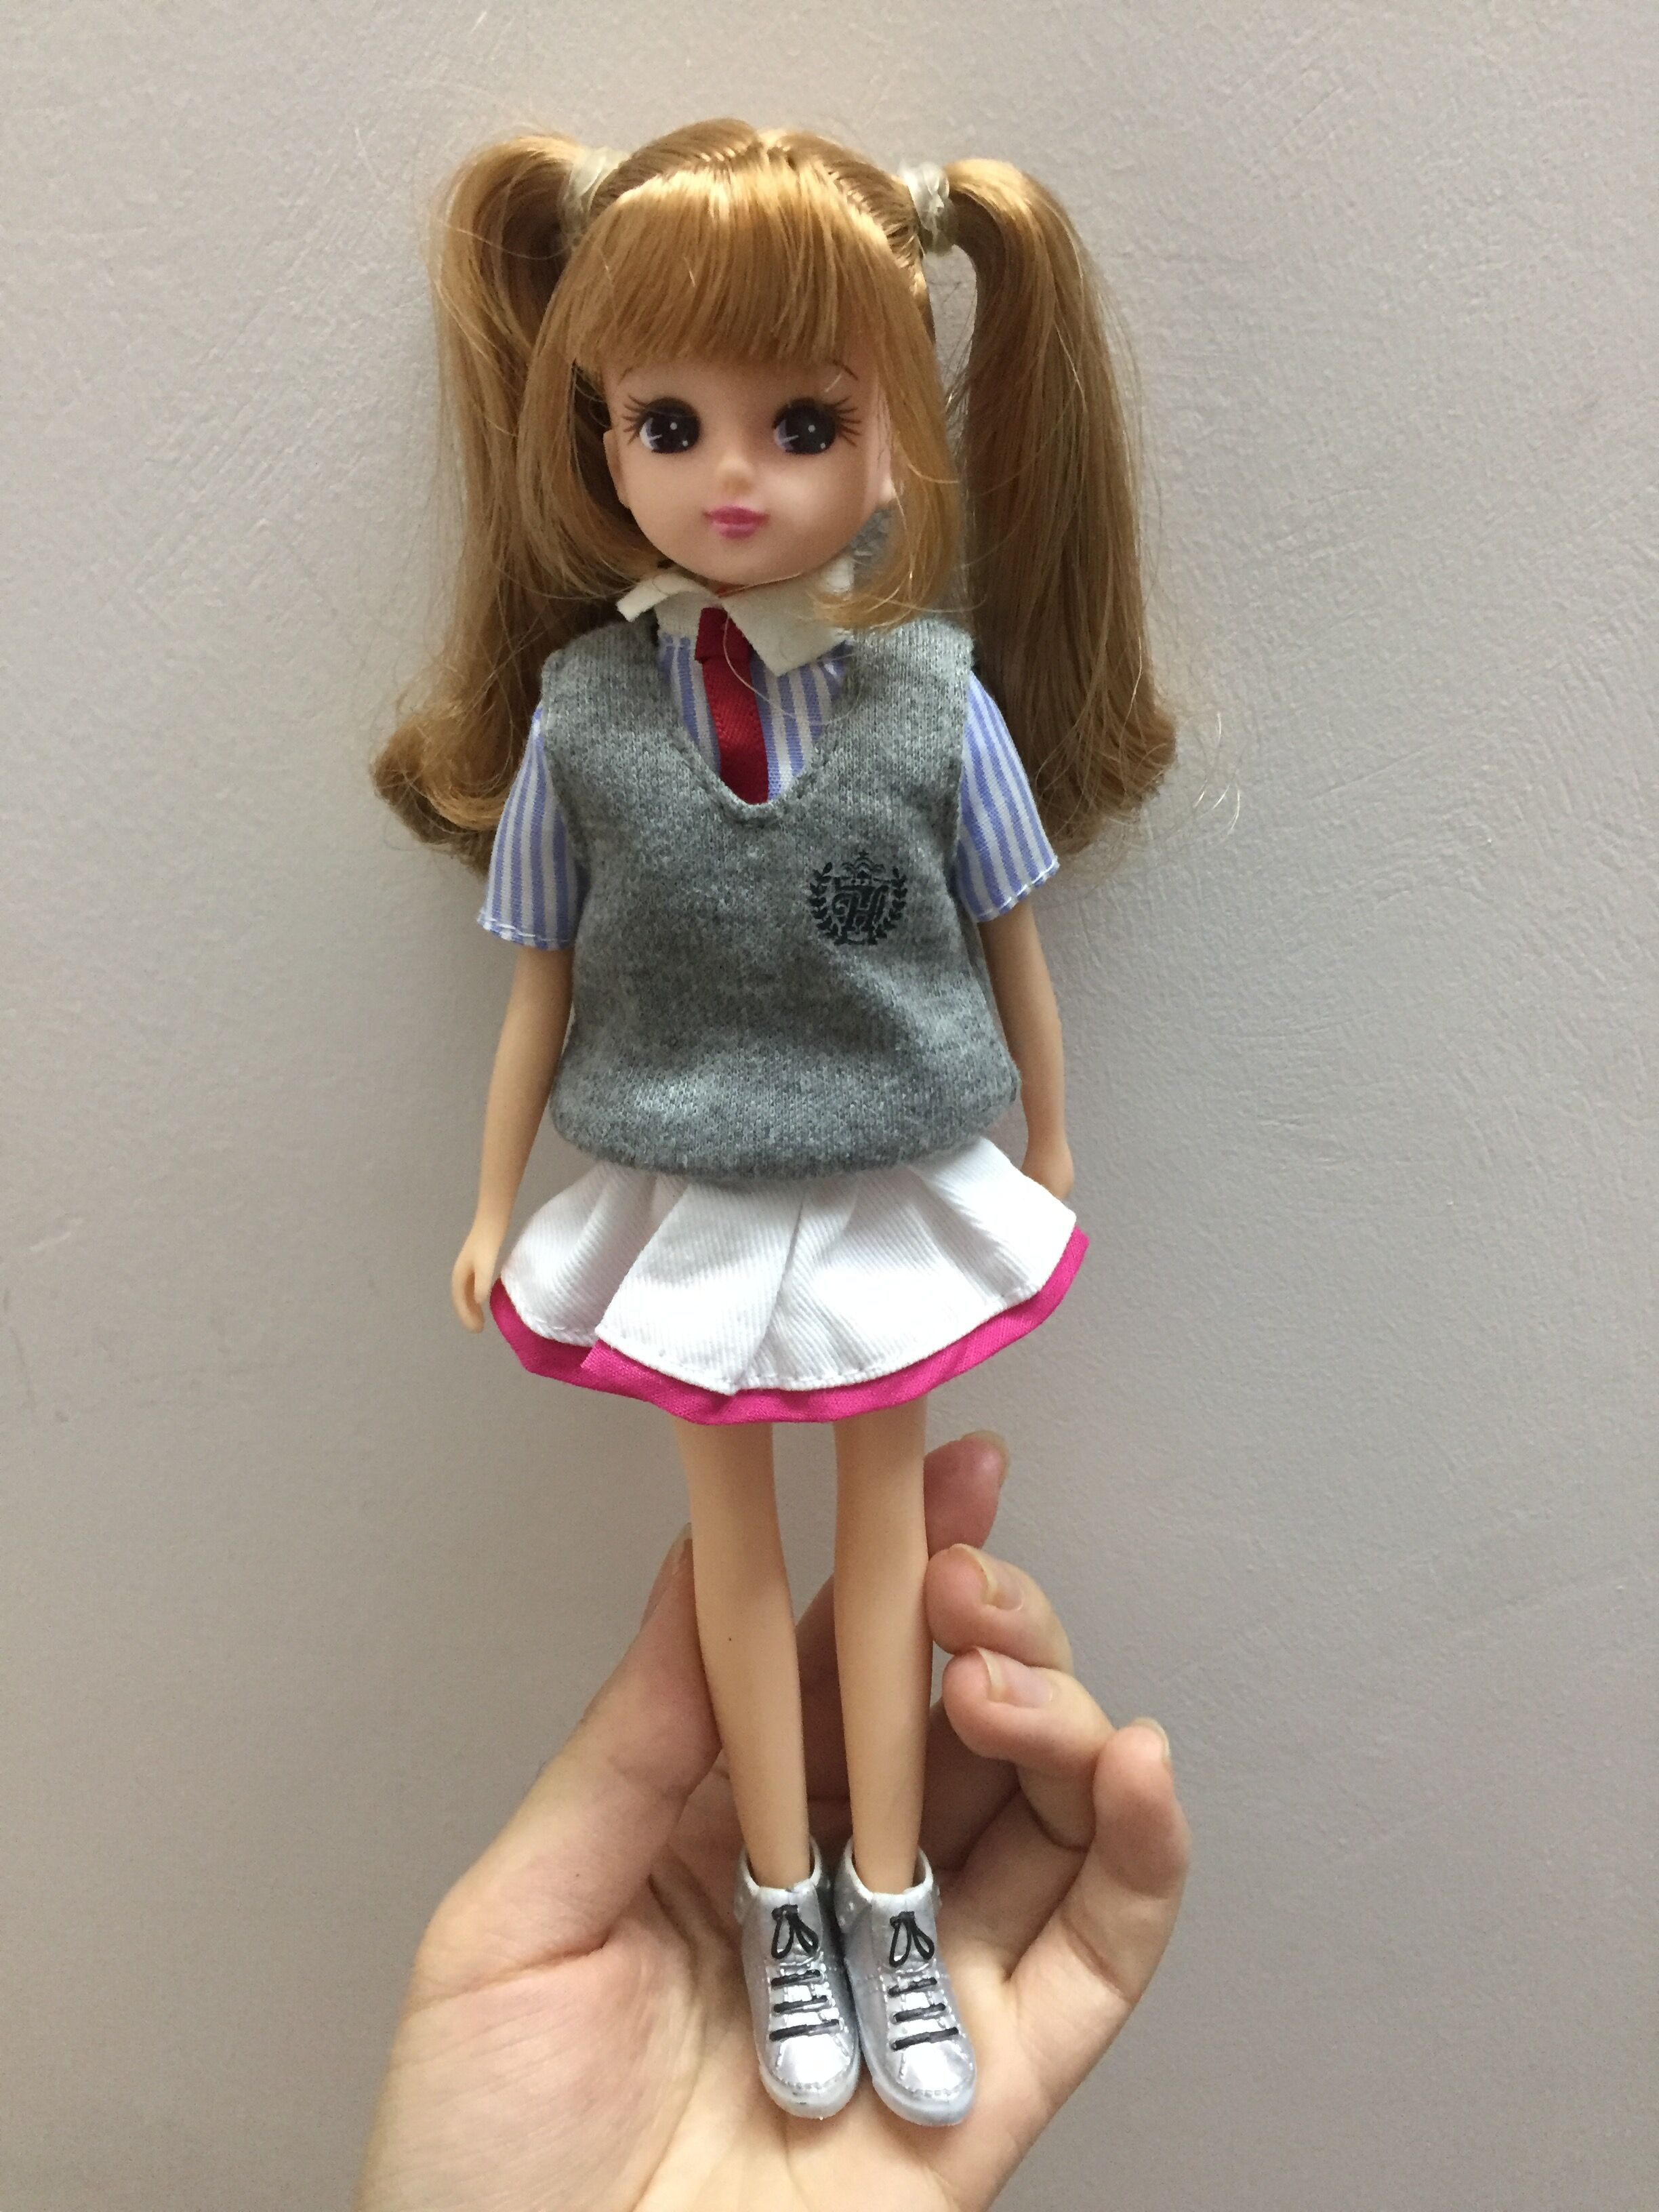 plastic licca body+head+Uniforms clothes+shoes normal skin suit for licca 1/6 doll lovely Girls Fashion Accessories